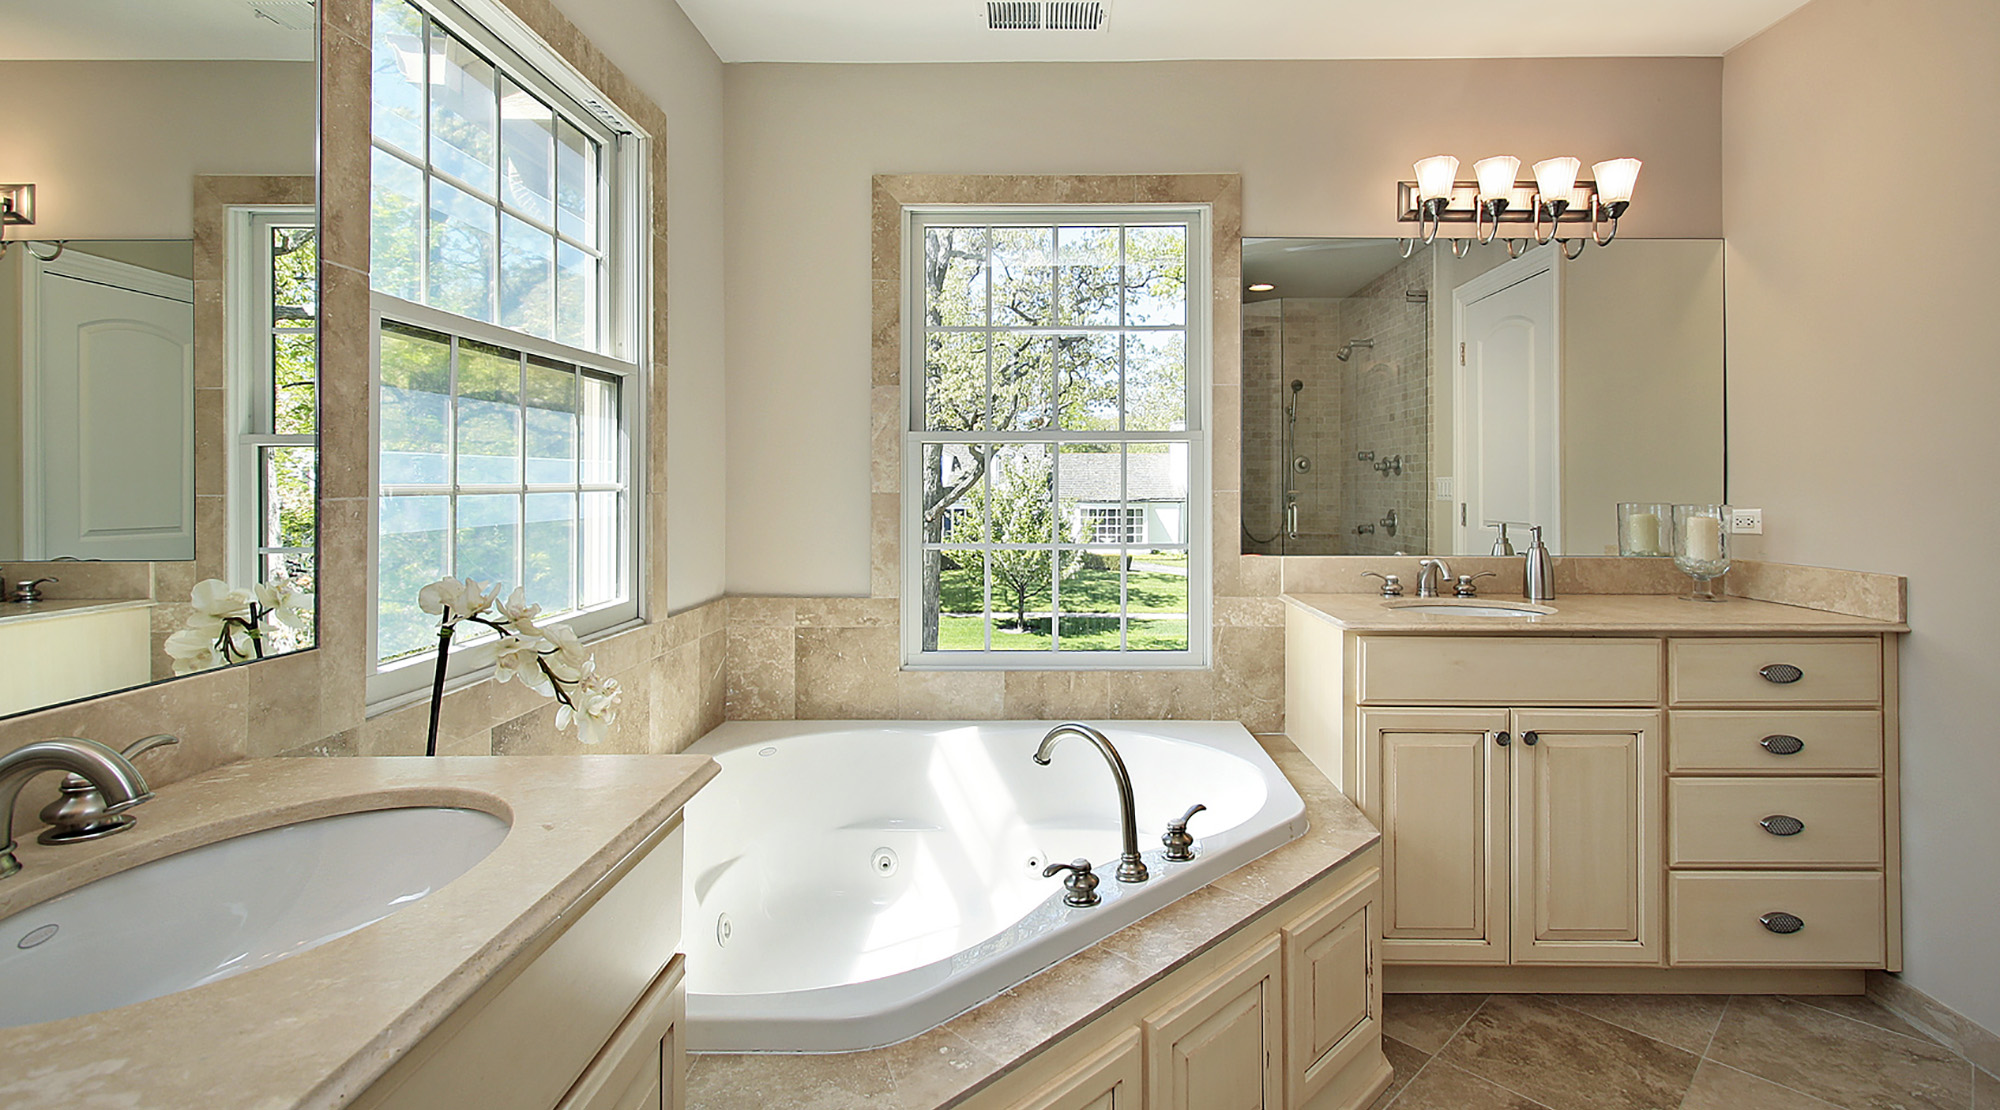 Jims Bathroom Remodeling Atlanta Bathroom Remodeling Specialist - Bathroom remodel atlanta